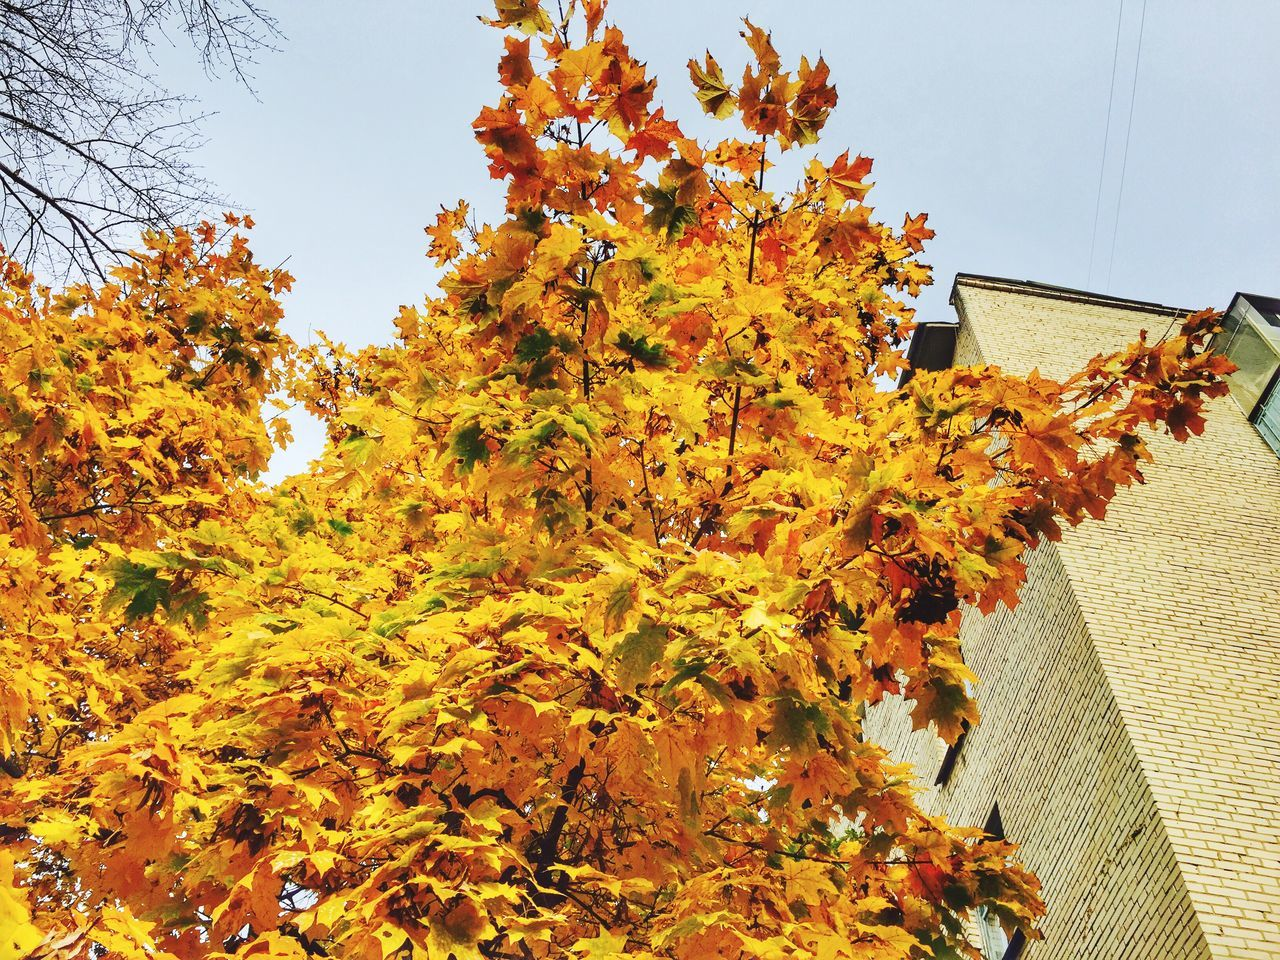 autumn, leaf, change, tree, building exterior, architecture, growth, nature, day, outdoors, built structure, orange color, no people, low angle view, house, beauty in nature, plant, branch, sky, flower, close-up